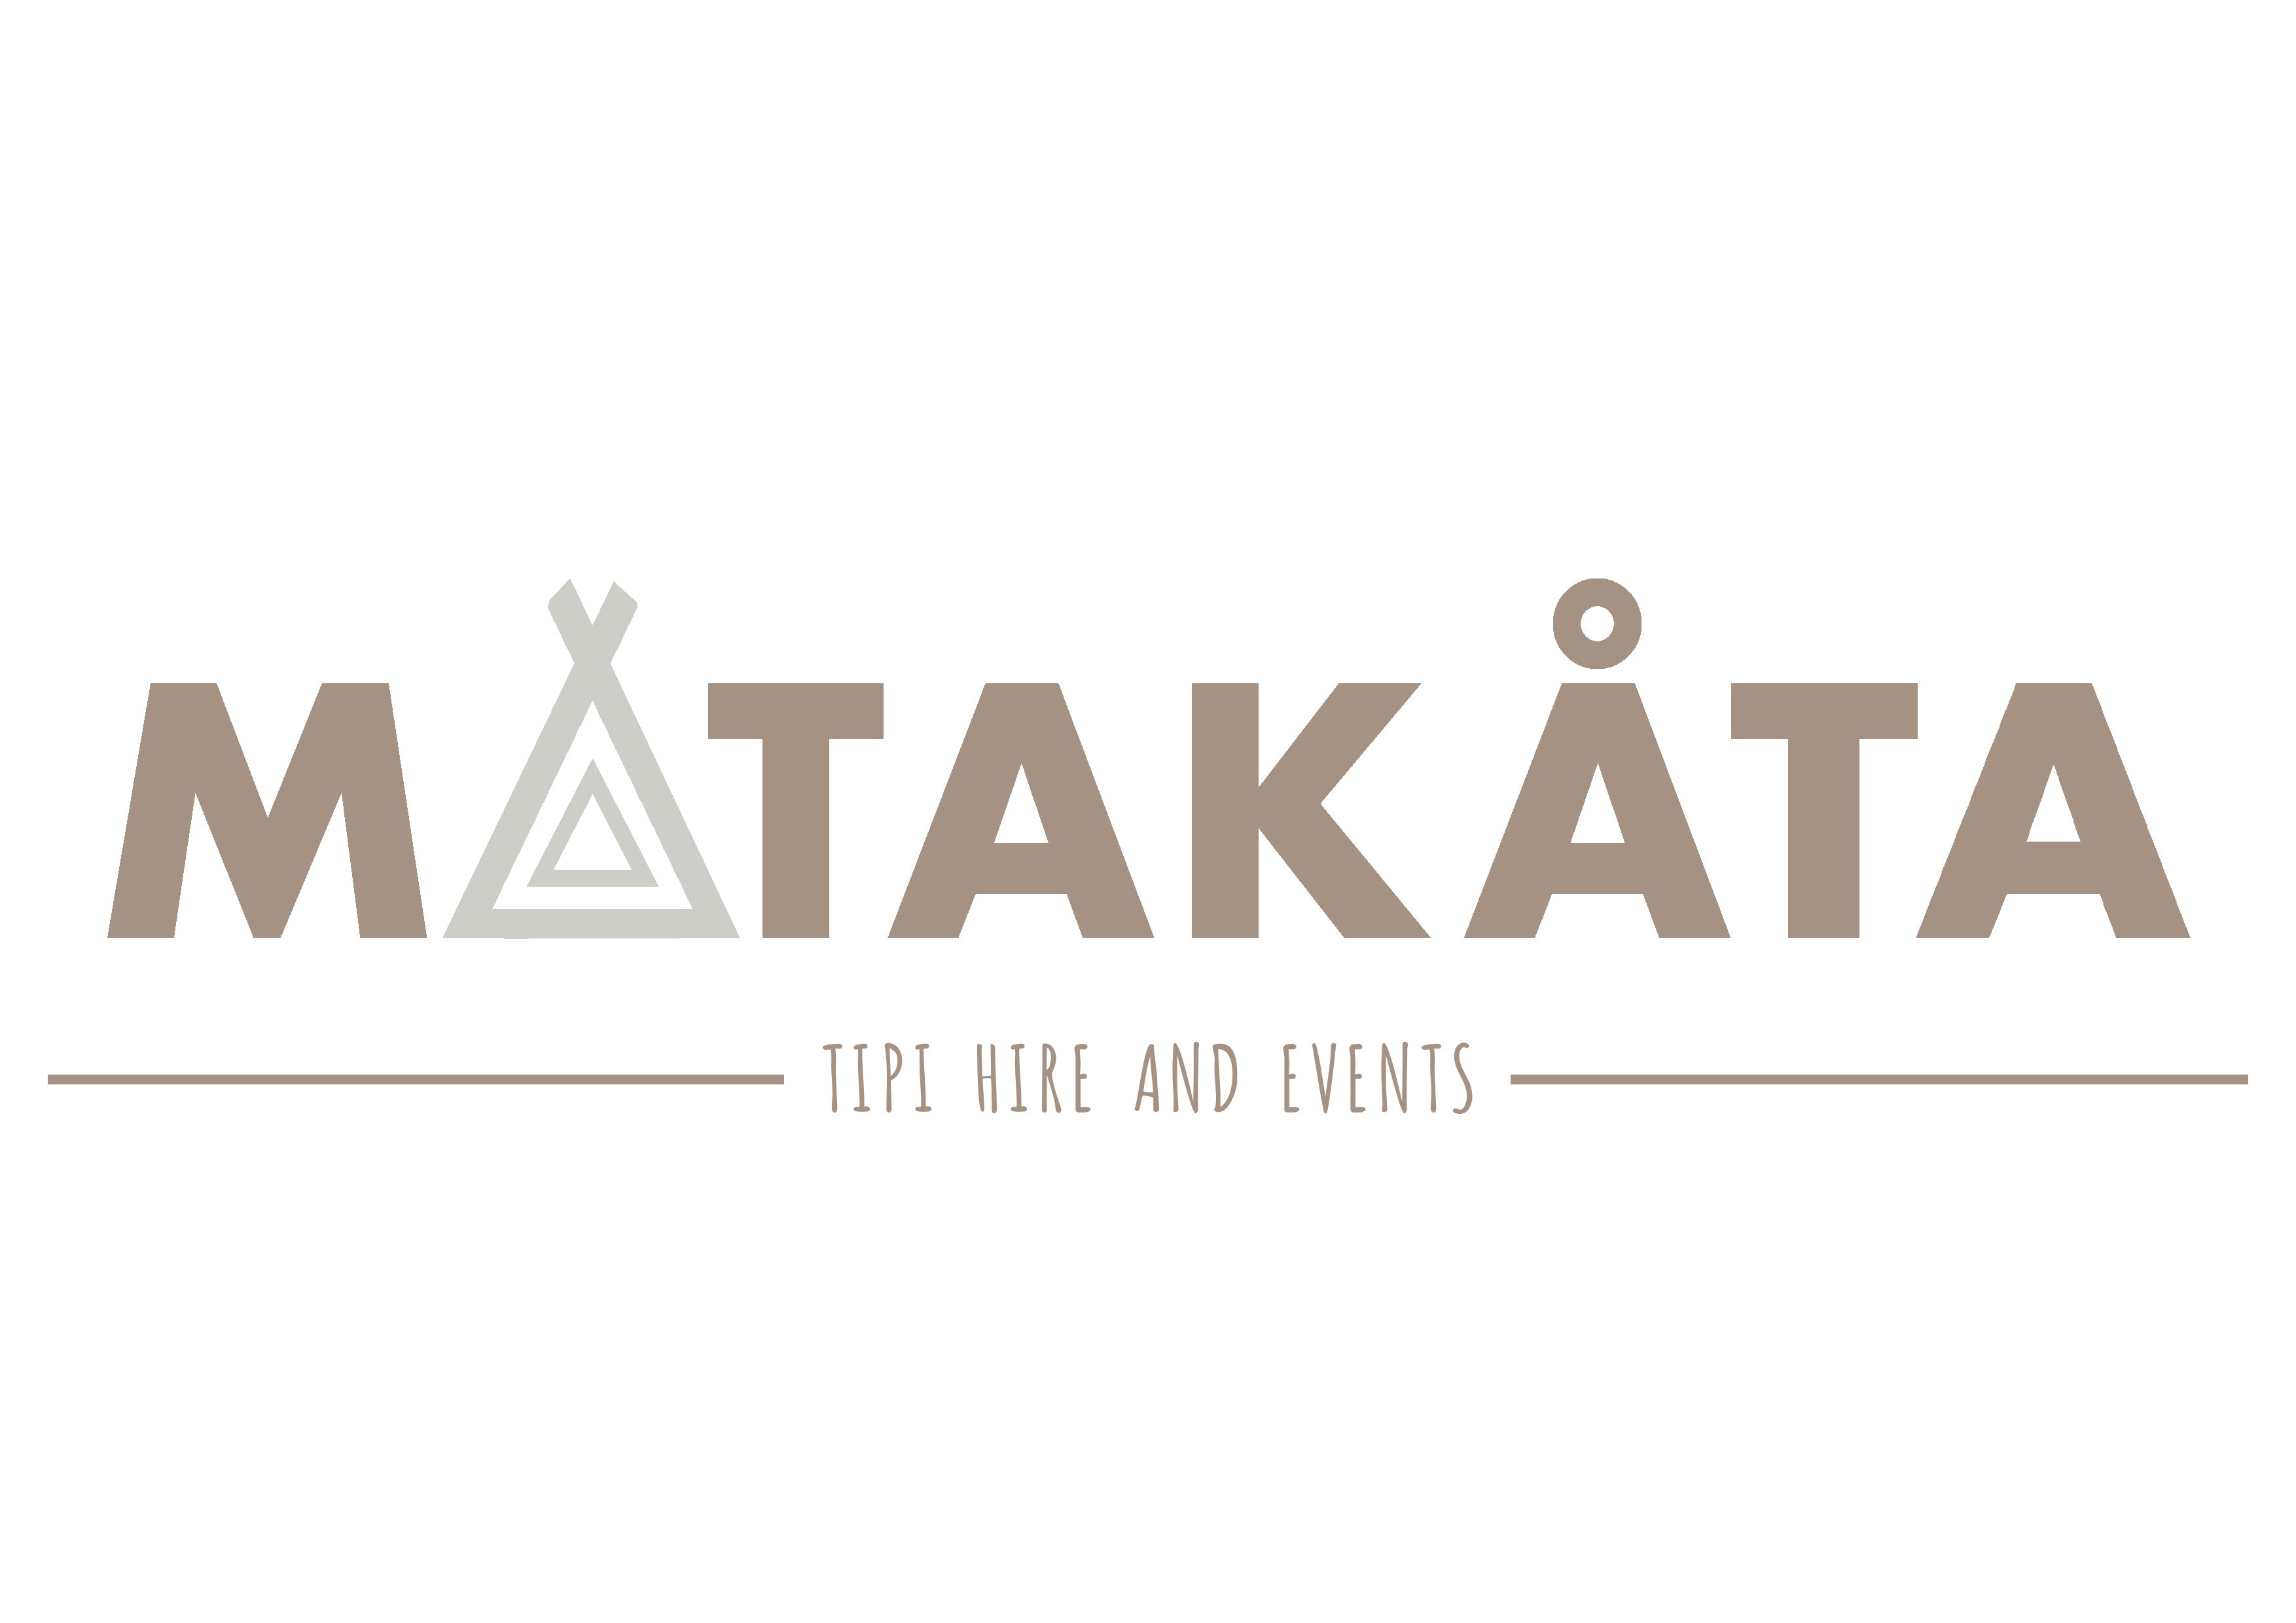 Matakata Tipi Hire & Events